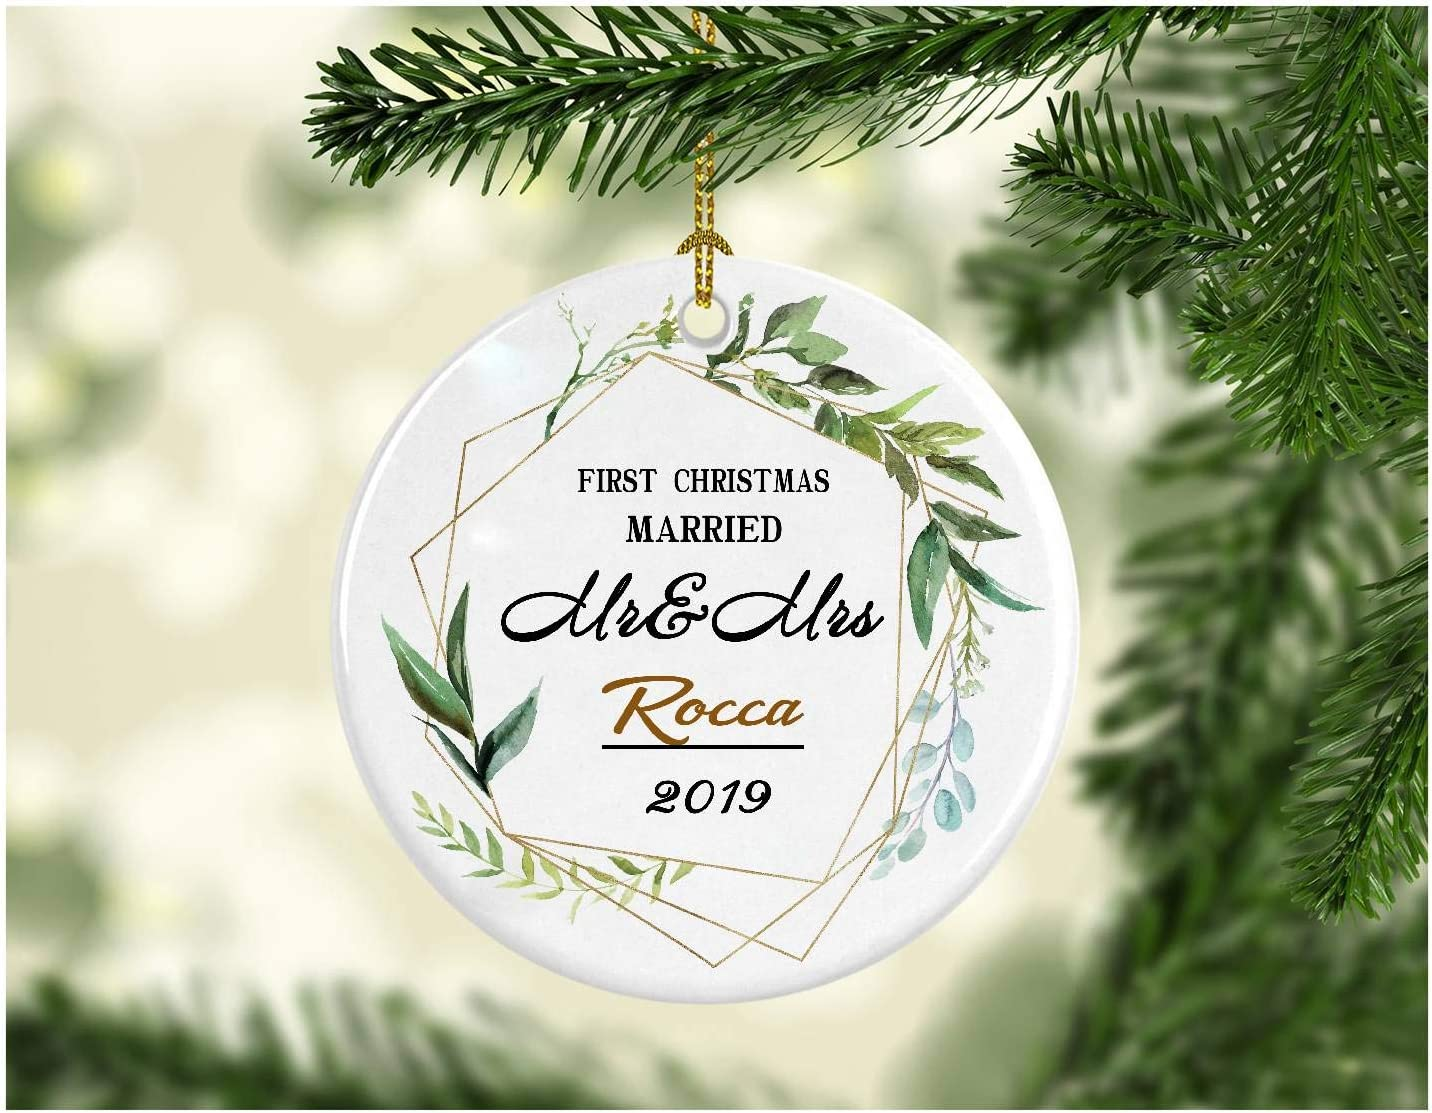 Amazon Com First Christmas Together 2019 Ornament Mr Mrs Rocca